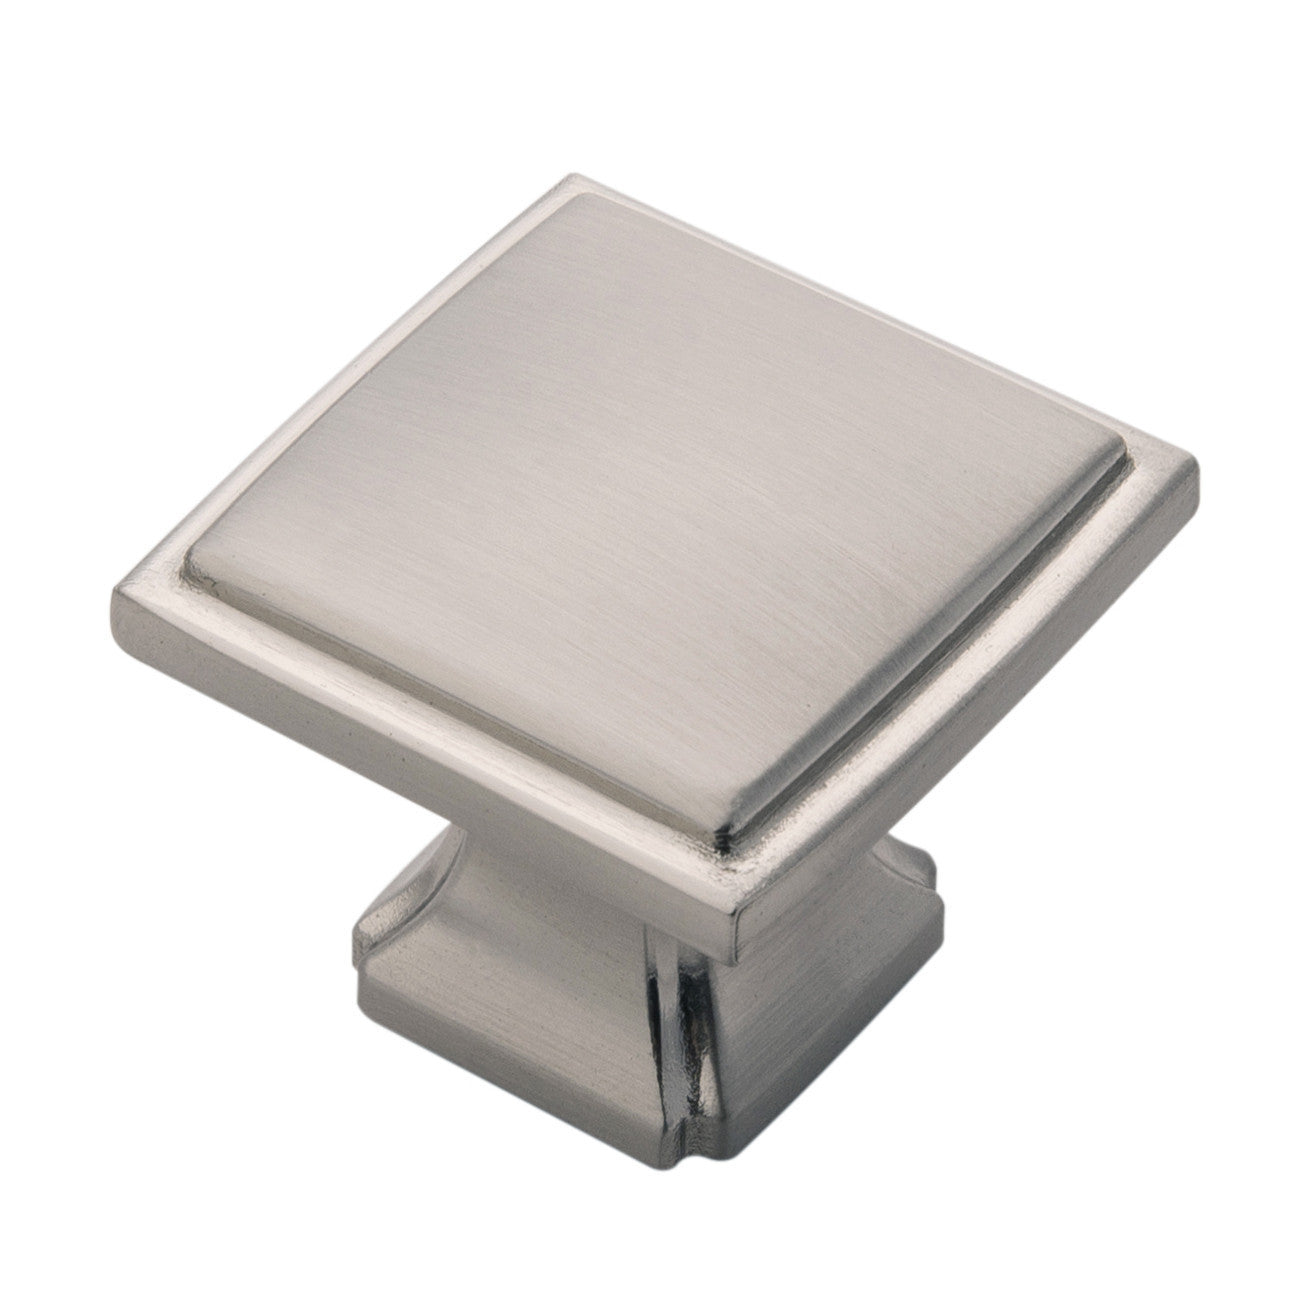 Silver 1 1/4 In. Square Bridges Cabinet Knob ...